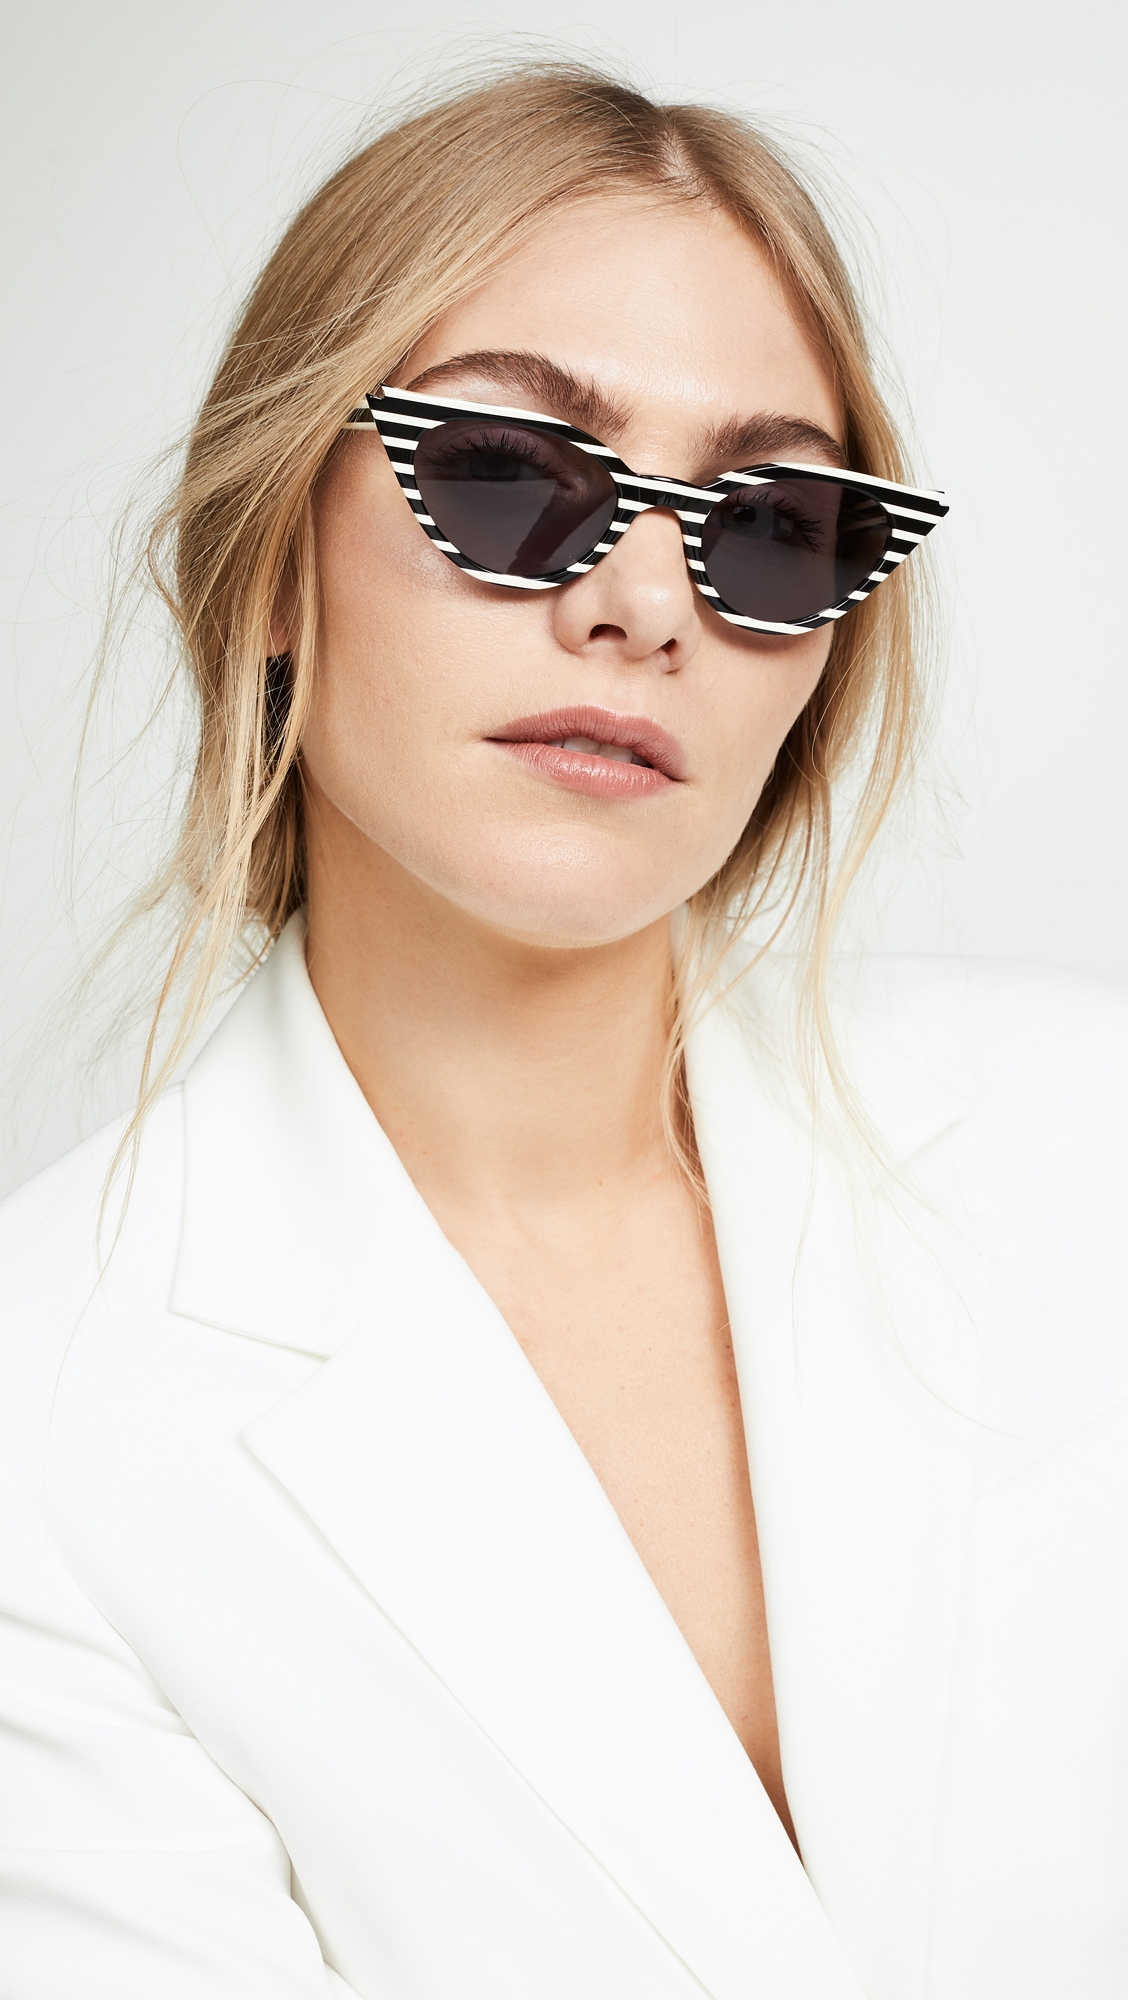 c7a2f6a3141b Illesteva Isabella Sunglasses in 2019 | Products | Sunglasses, Round ...